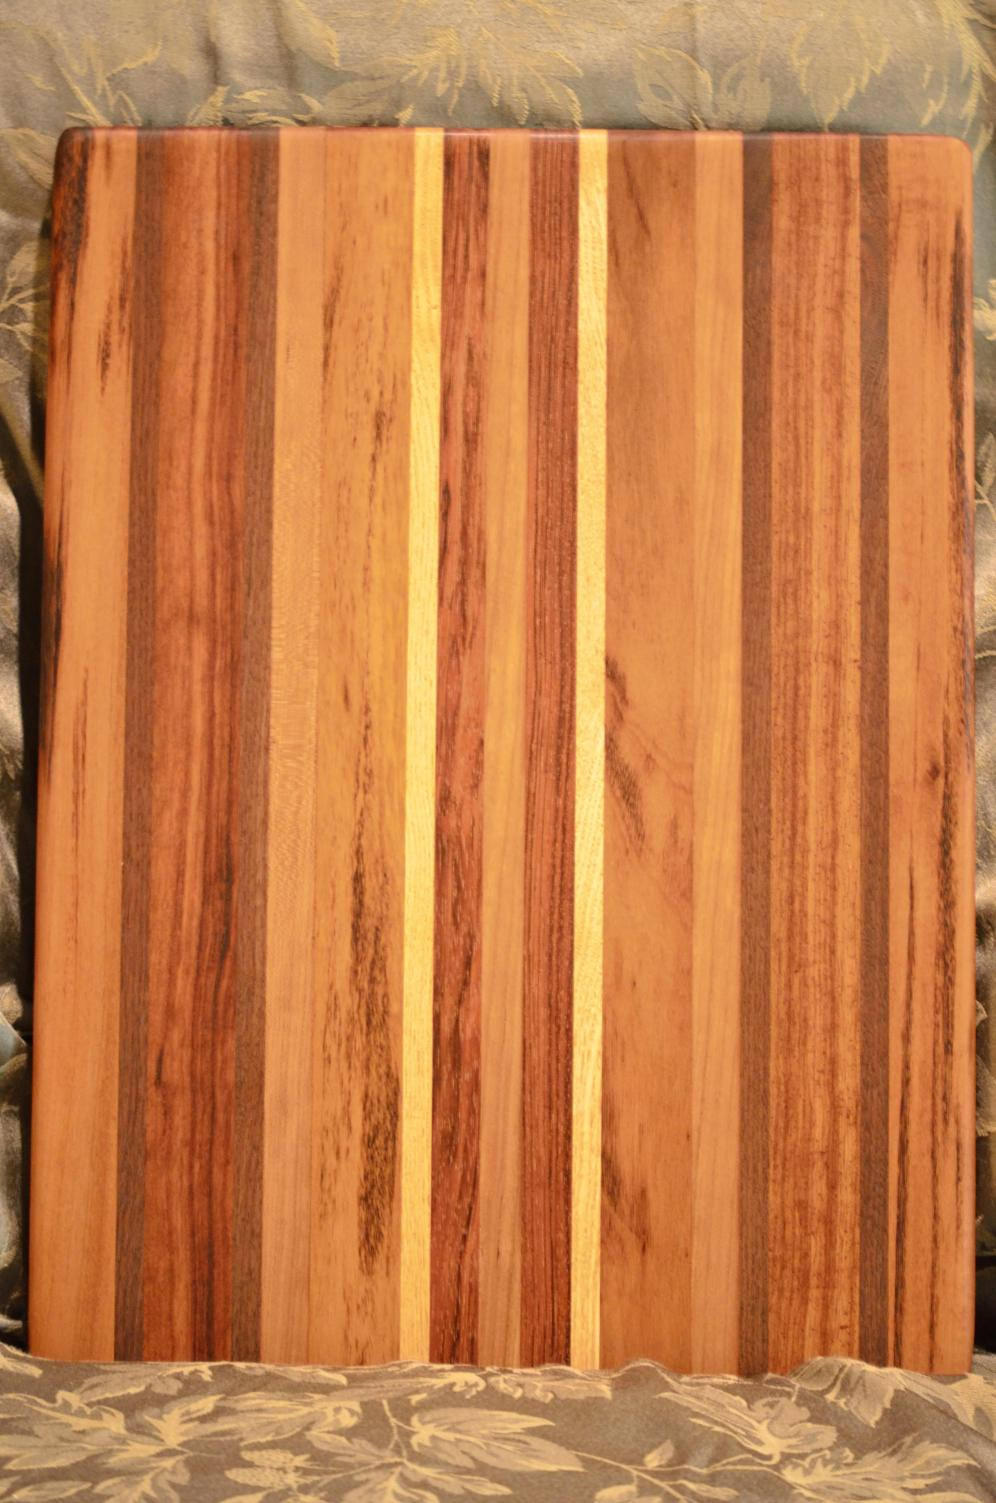 As requested by Alley. Tigerwood, Walnut, Jatoba, Cherry and Honey Locust.